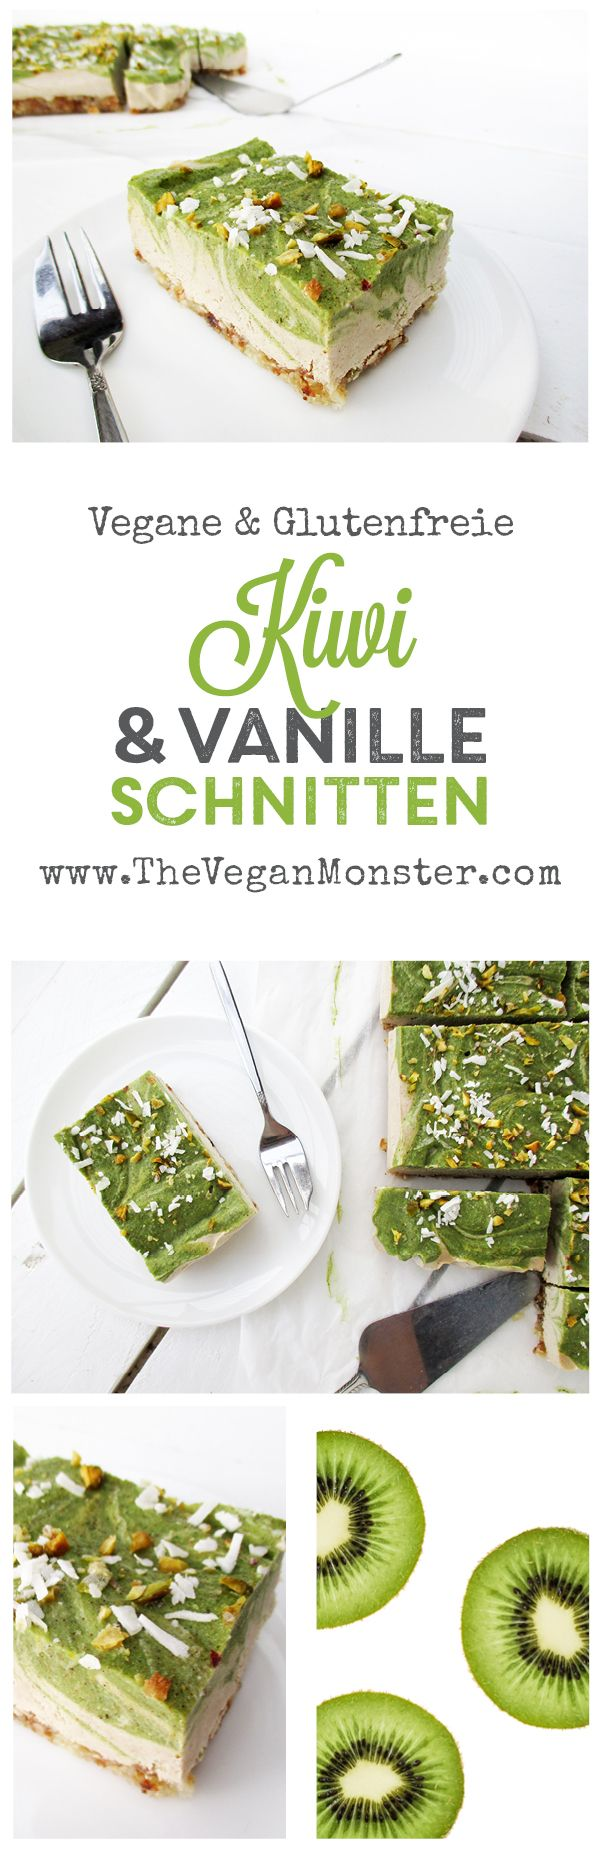 No Bake Kiwifruit Vanilla Slices Recipe | Das Vegan Monster - vegane & glutenfreie Rezepte